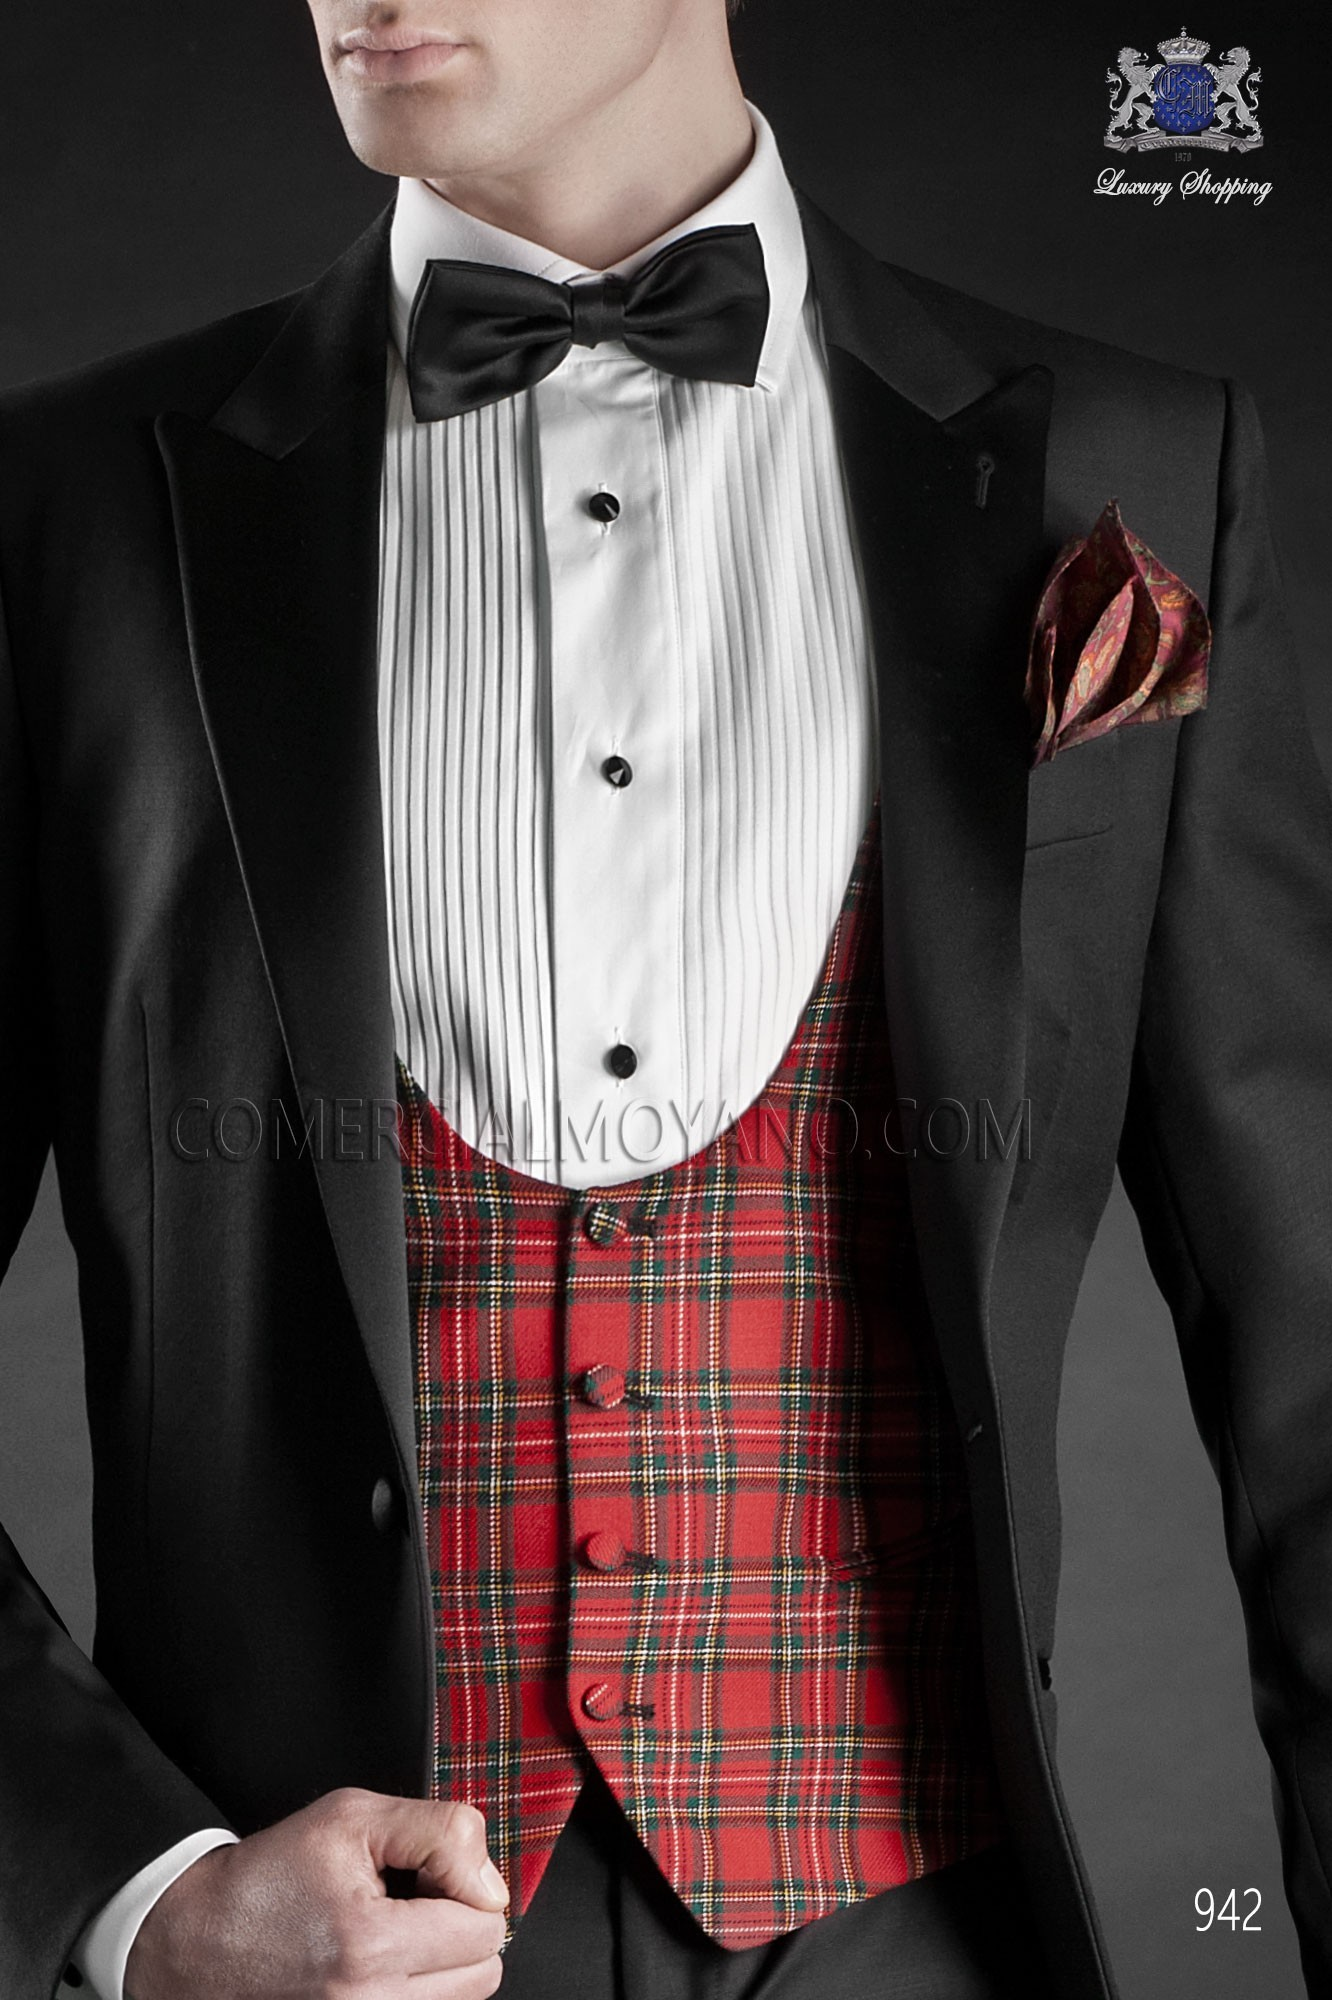 Italian blacktie black men wedding suit, model: 942 Ottavio Nuccio Gala Black Tie Collection